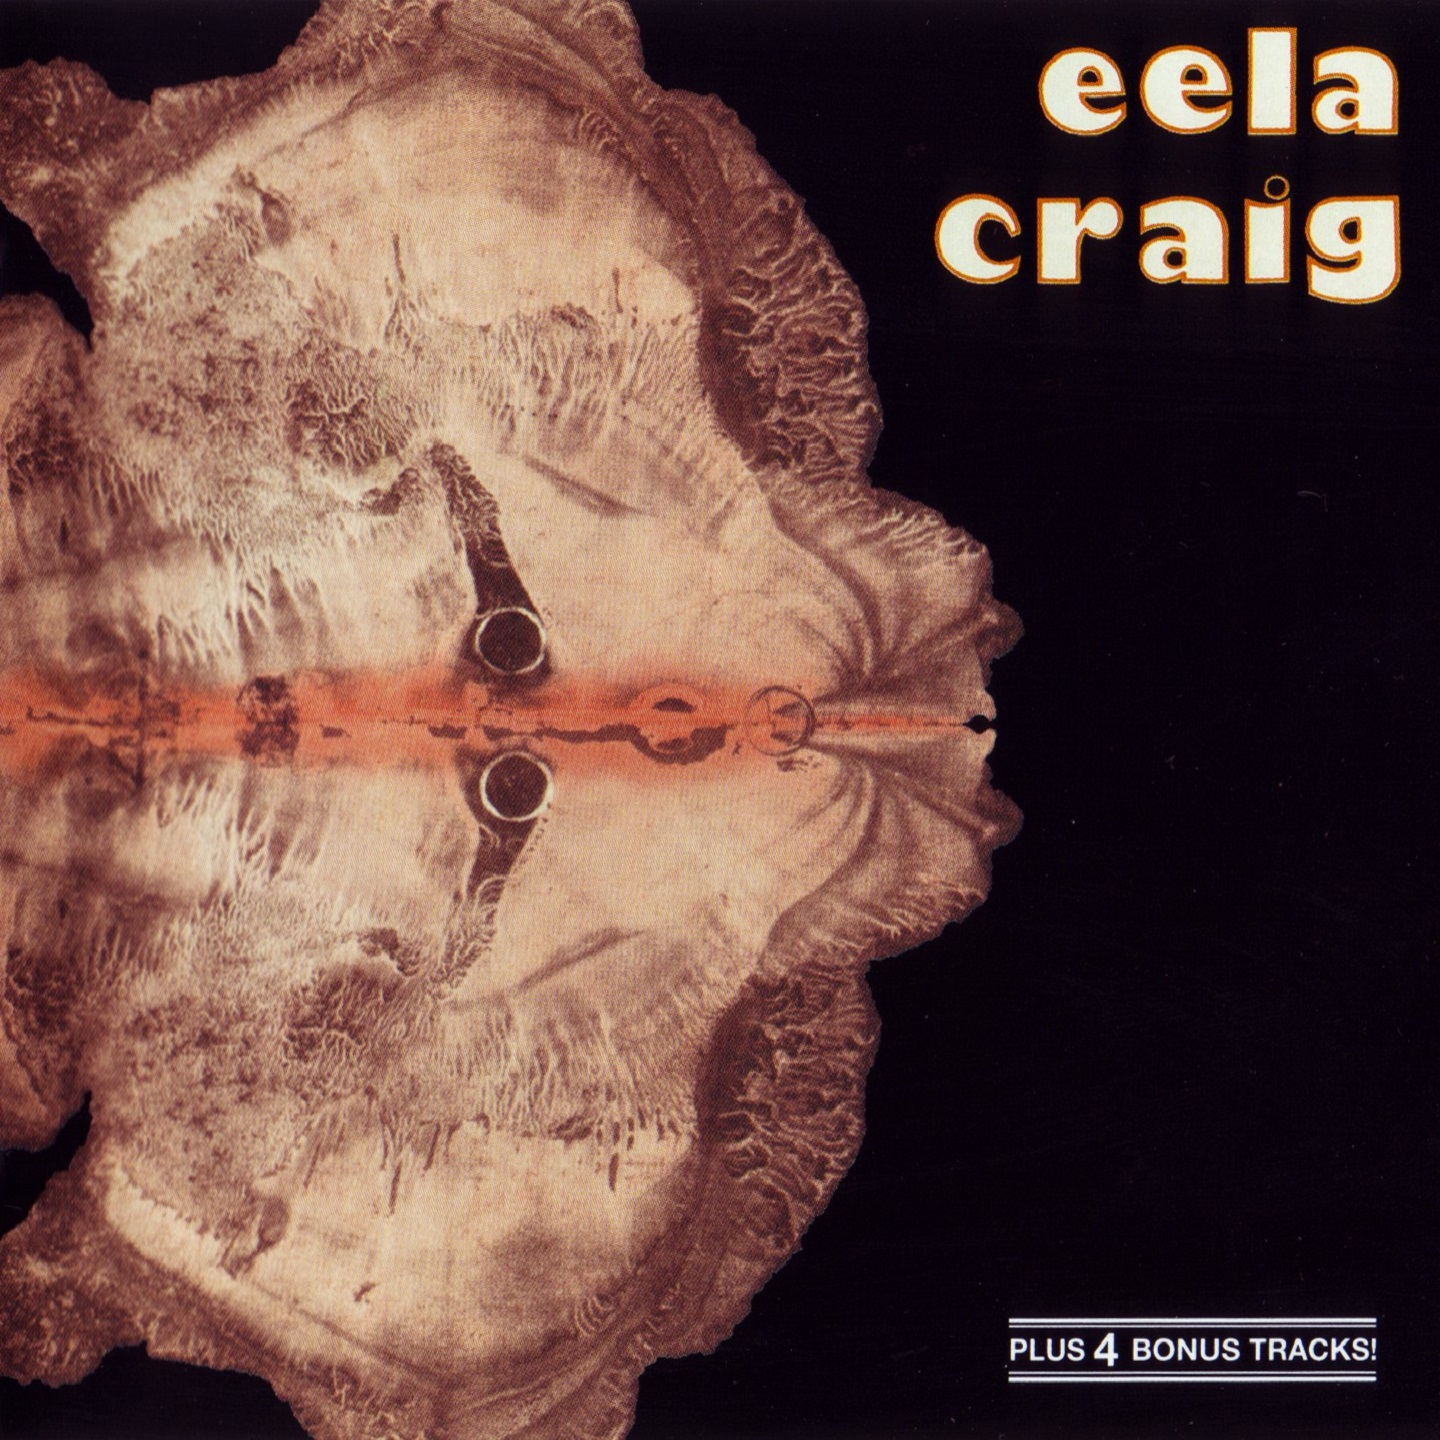 Eela Craig - Symphonic Rock:One Niter - Hats Of Glass